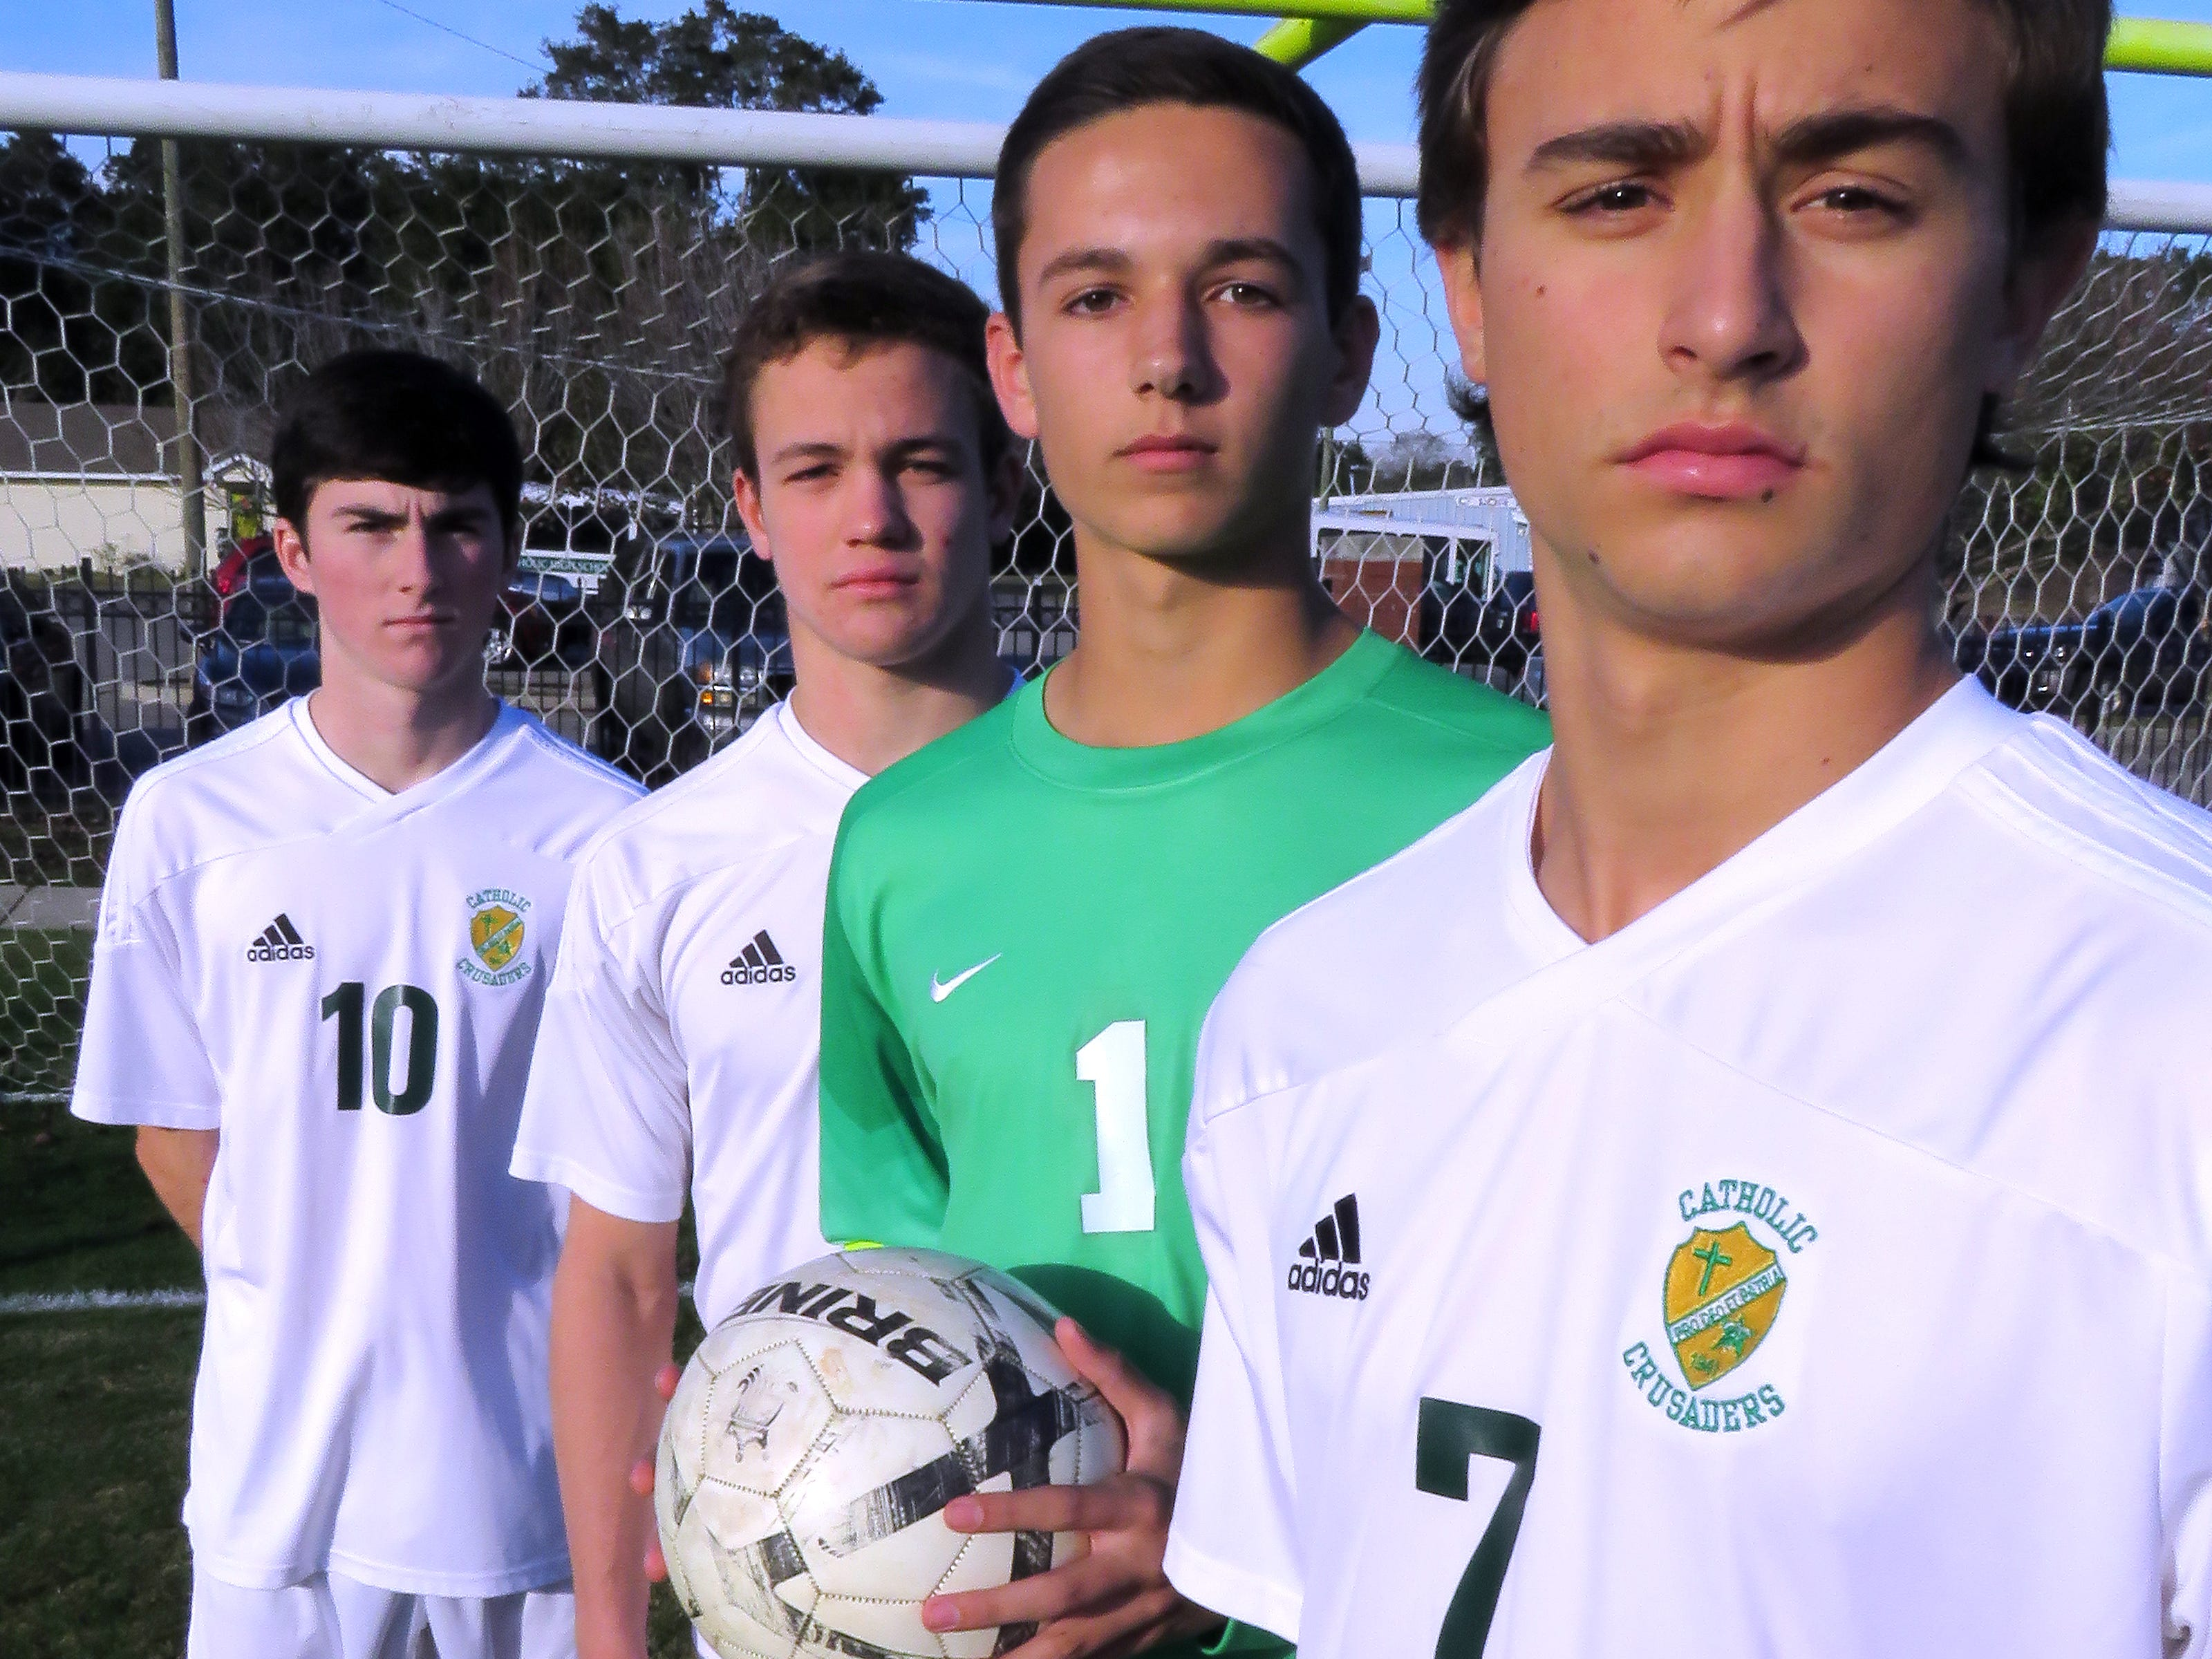 Pensacola Catholic Boys Soccer players (front to back) Seth Straw, Tanner Kukes, Erick Buer and Billy Harris.